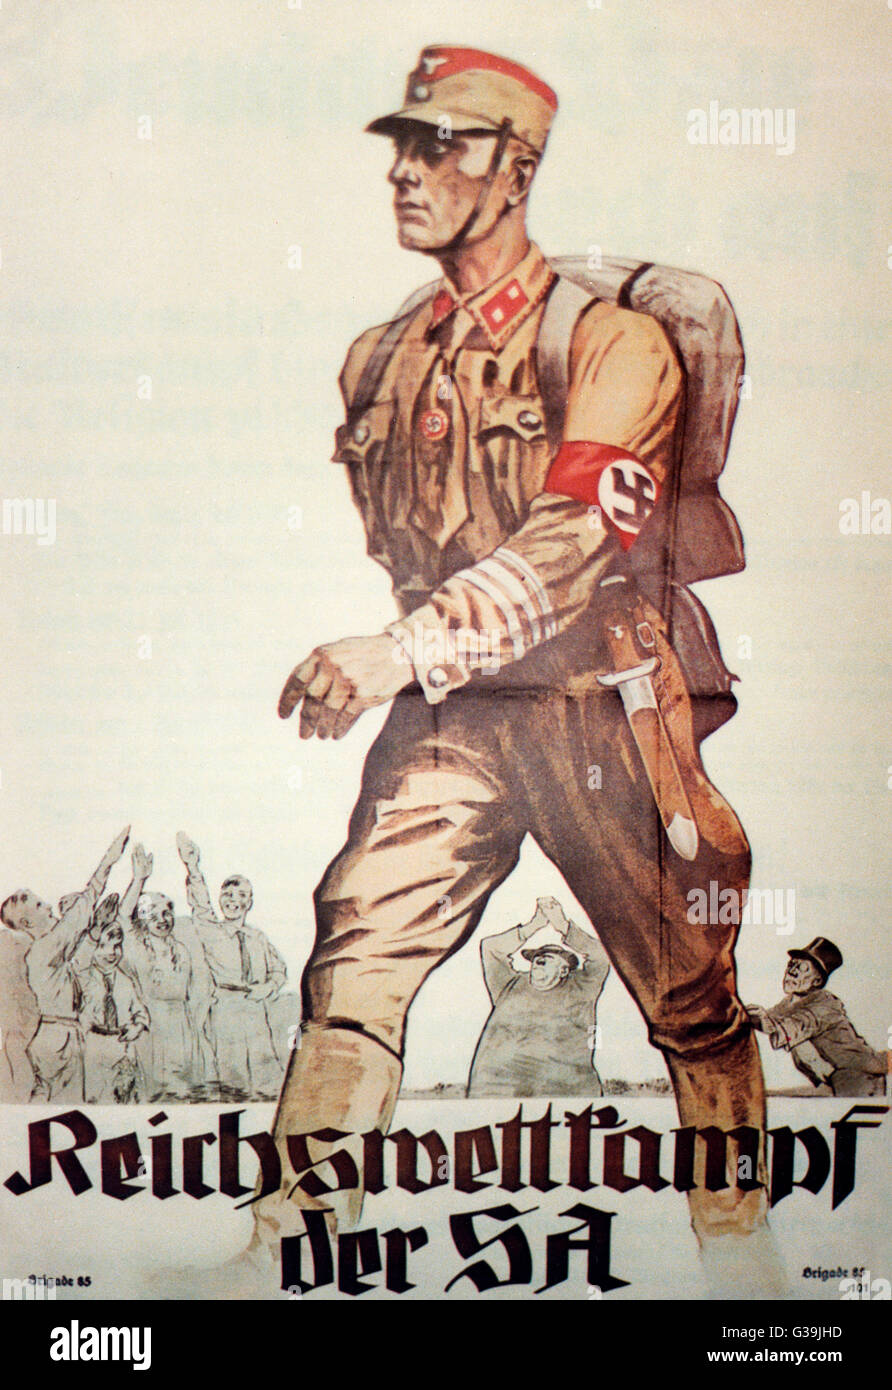 Propaganda poster for the  Stormtroopers of the SA  (Sturmabteilung: Storm  Detachment).      Date: 1930s - Stock Image